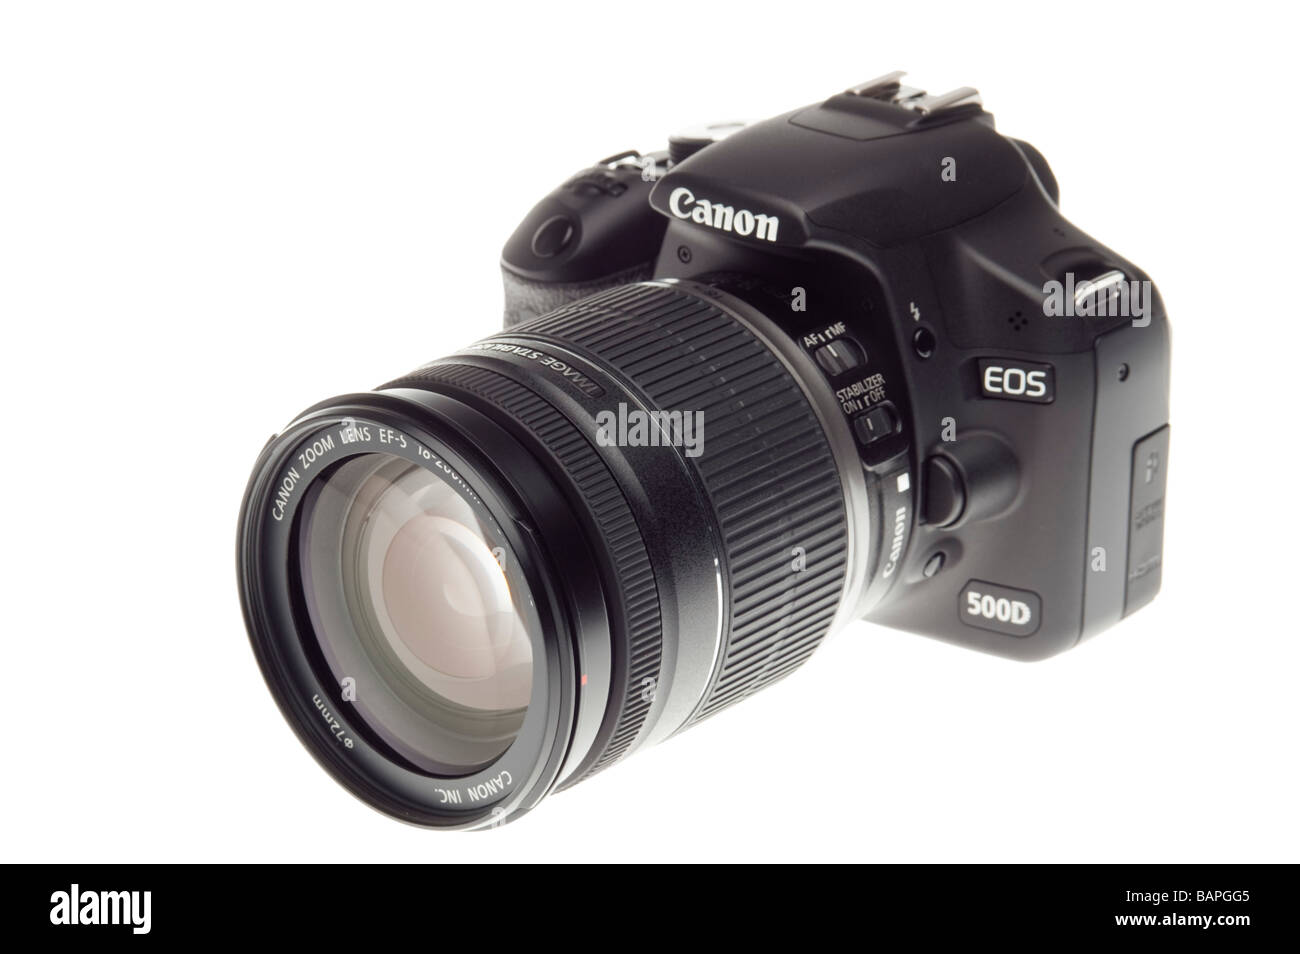 Camera Hd Dslr Camera With Video digital slr camera canon eos 500d hd video with zoom lens stock lens